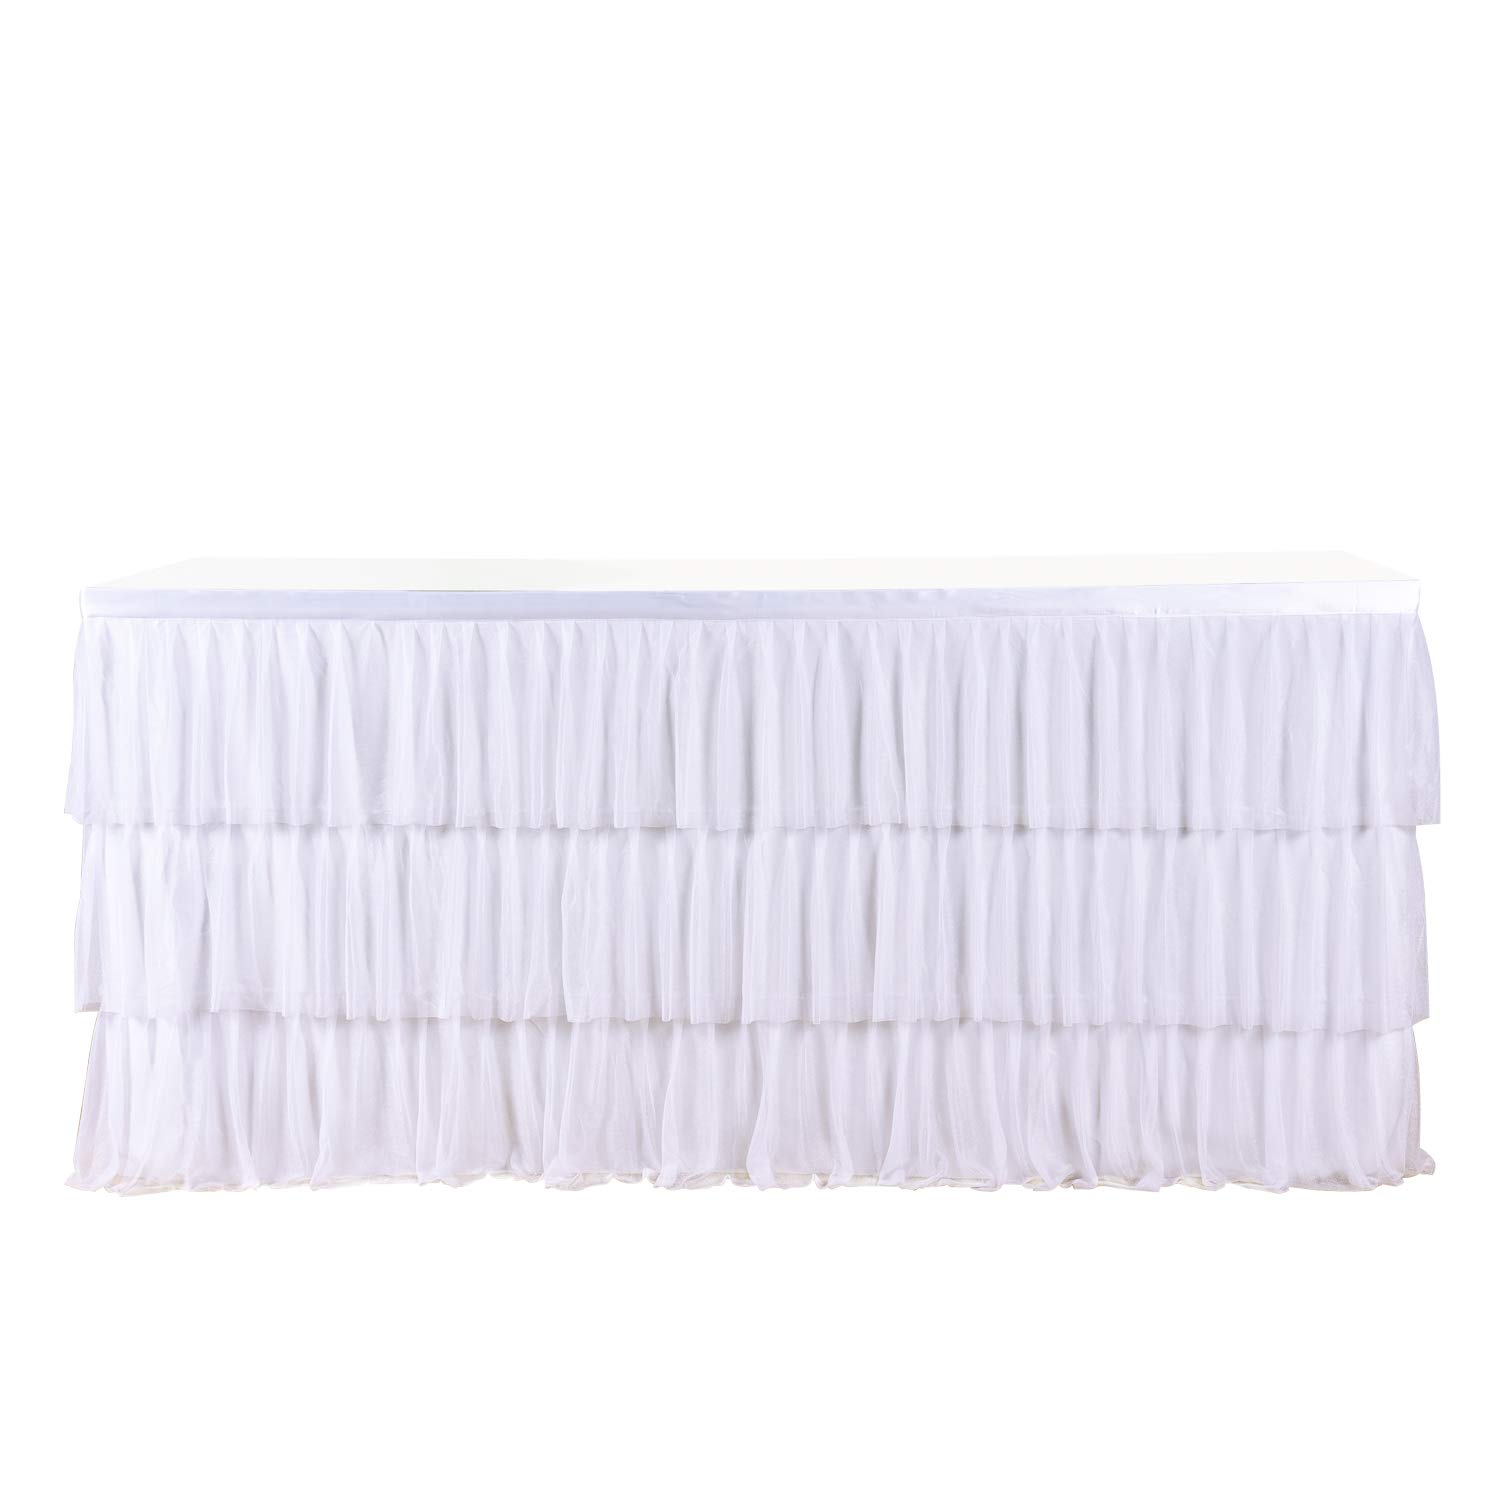 6ft Tulle White Table Skirt For Round Or Rectangle Table With 3 Layer Dust Ruffle Skirting For Party, Meeting, Birthday, Wedding Decoration And Home Decor(L72InchH30Inch)